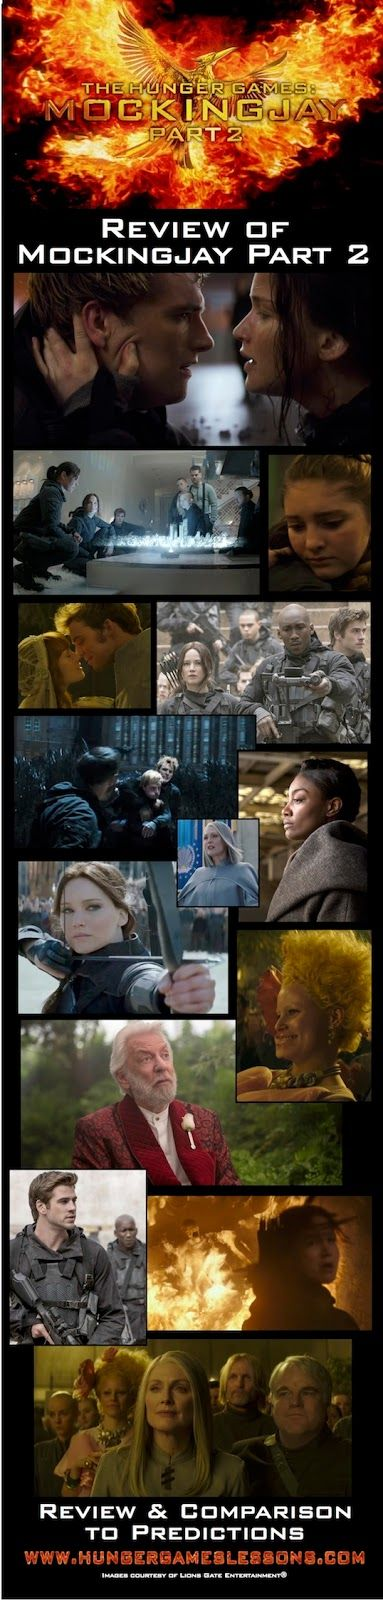 Hunger Games Lessons: Mockingjay Part 2 Movie Review